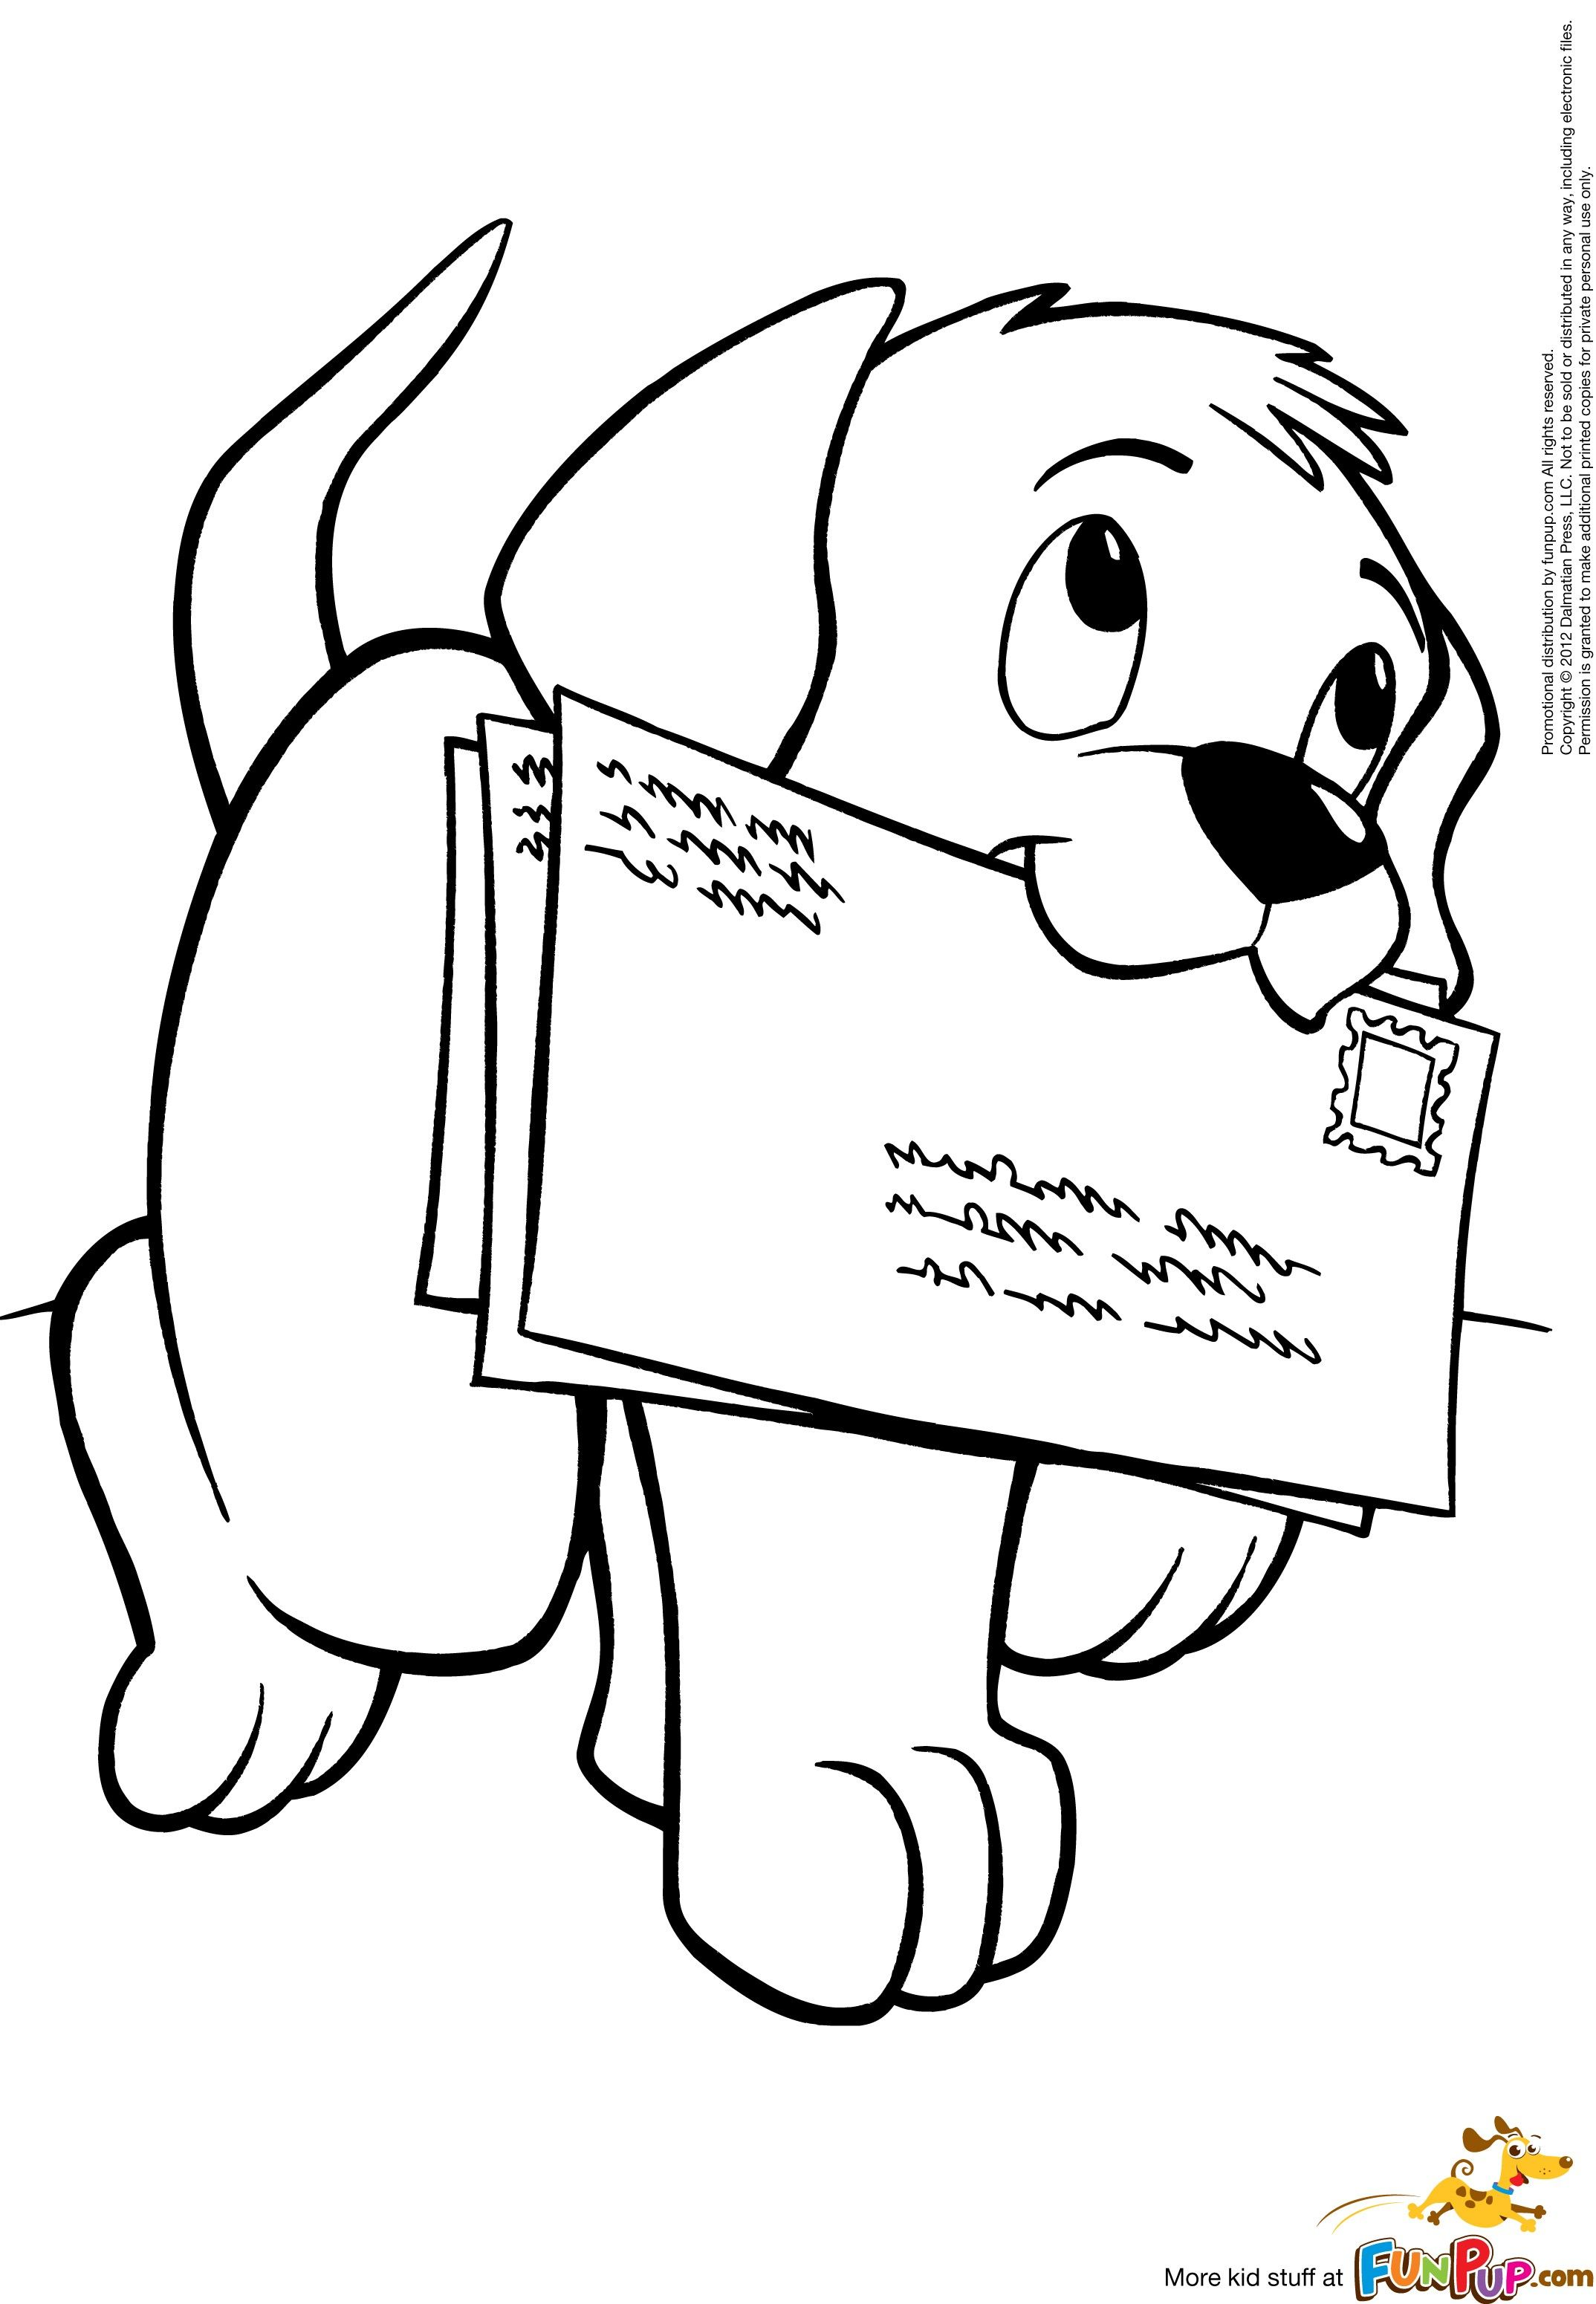 2148x3101 The Best Coloring Pages Puppy Colouring Sheet Pict For Dog